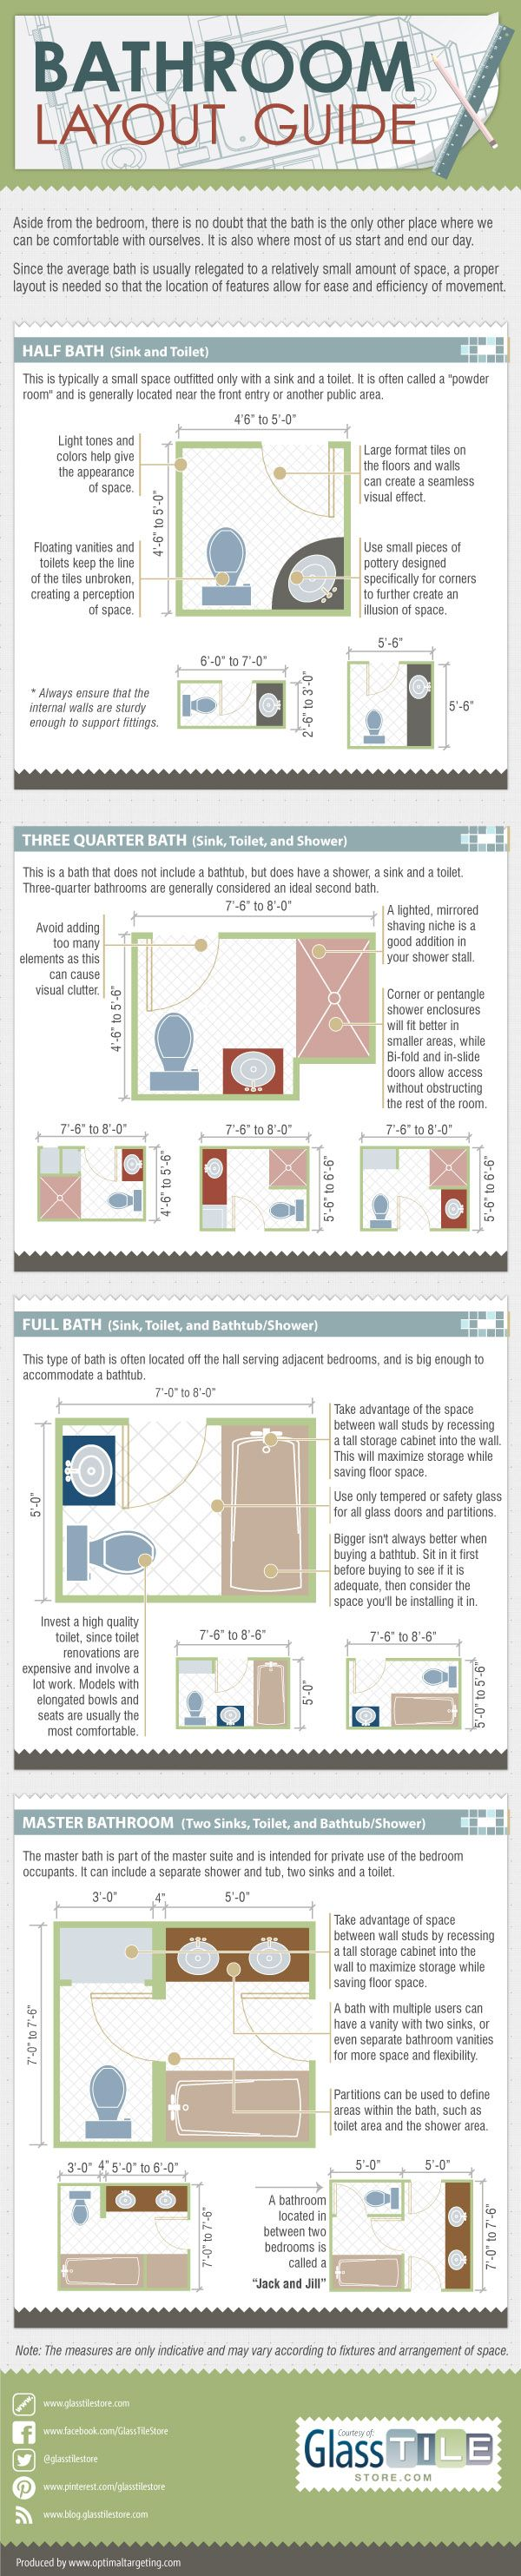 bathroom-layout-guide